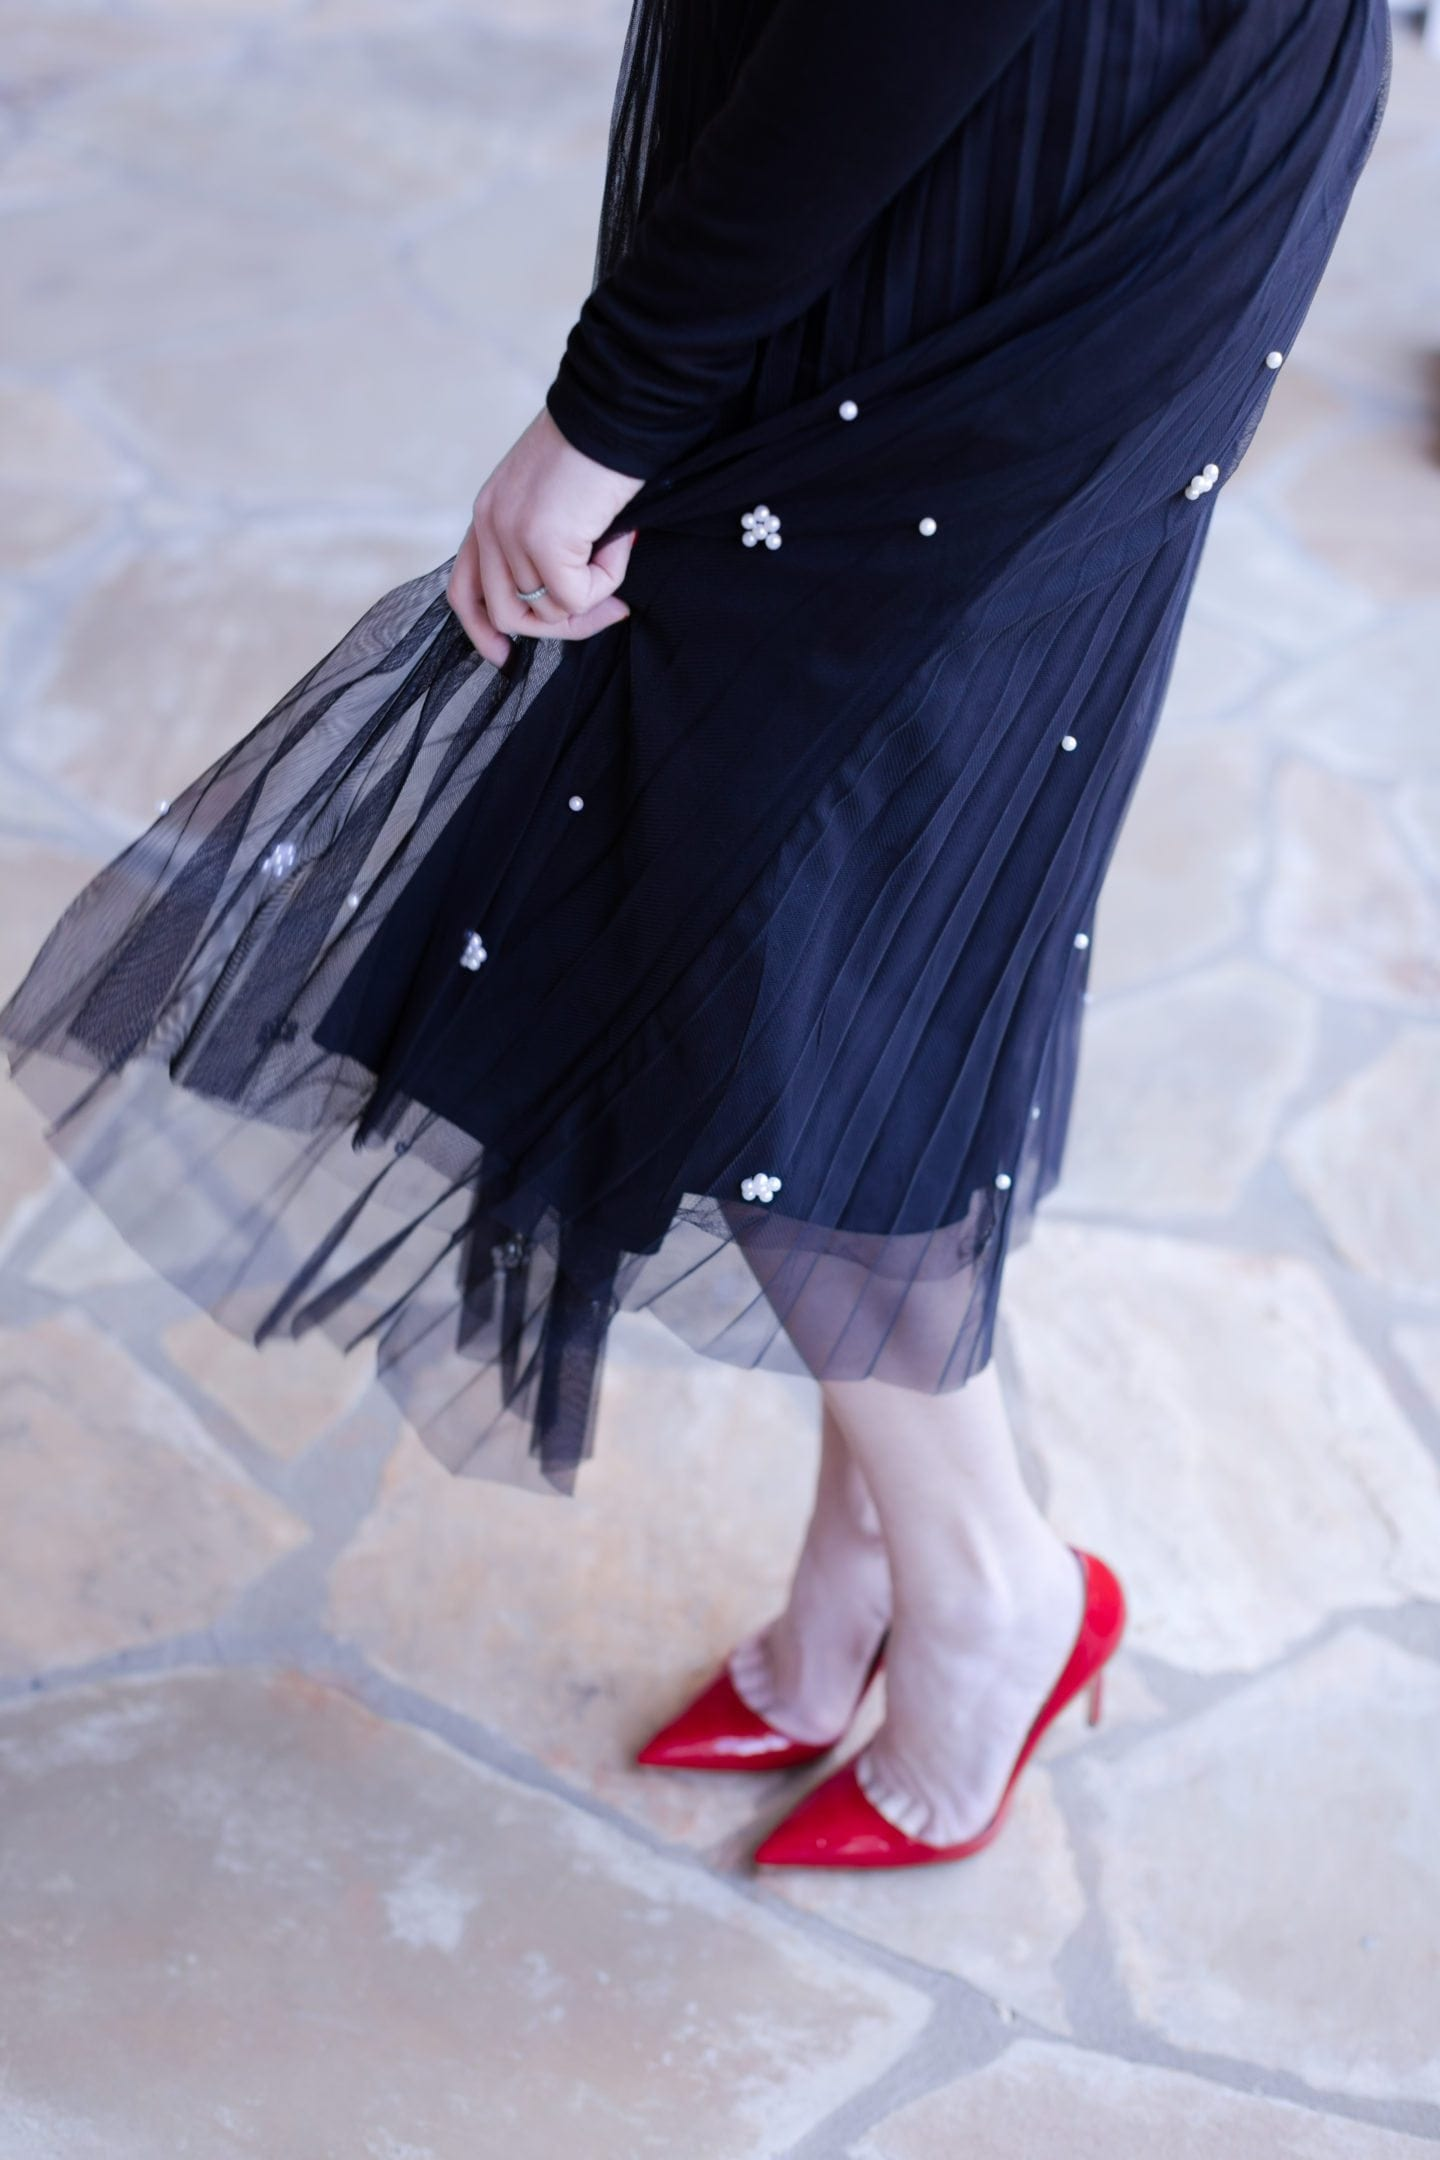 Thanksgiving wear. Red patent leather shoes with black midi length skirt with embellished pearl detail.